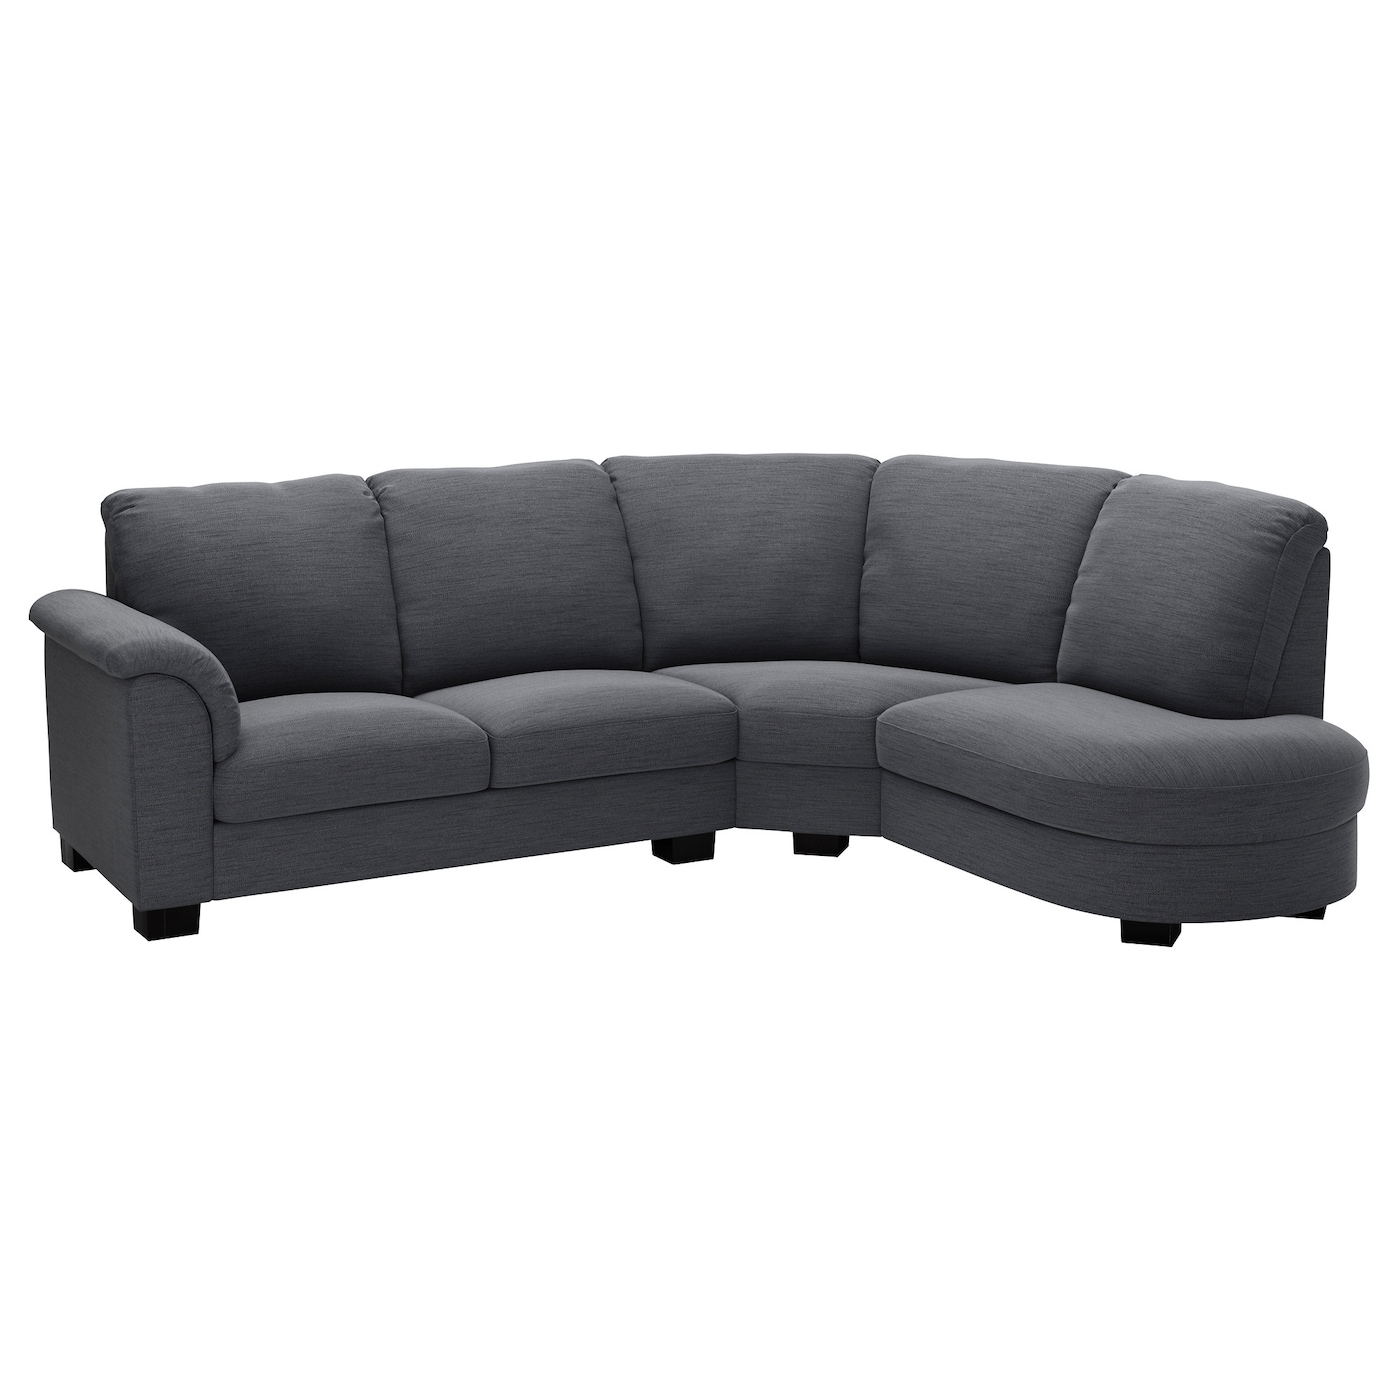 Tidafors corner sofa with arm left hensta grey ikea for Ikea gray sofa